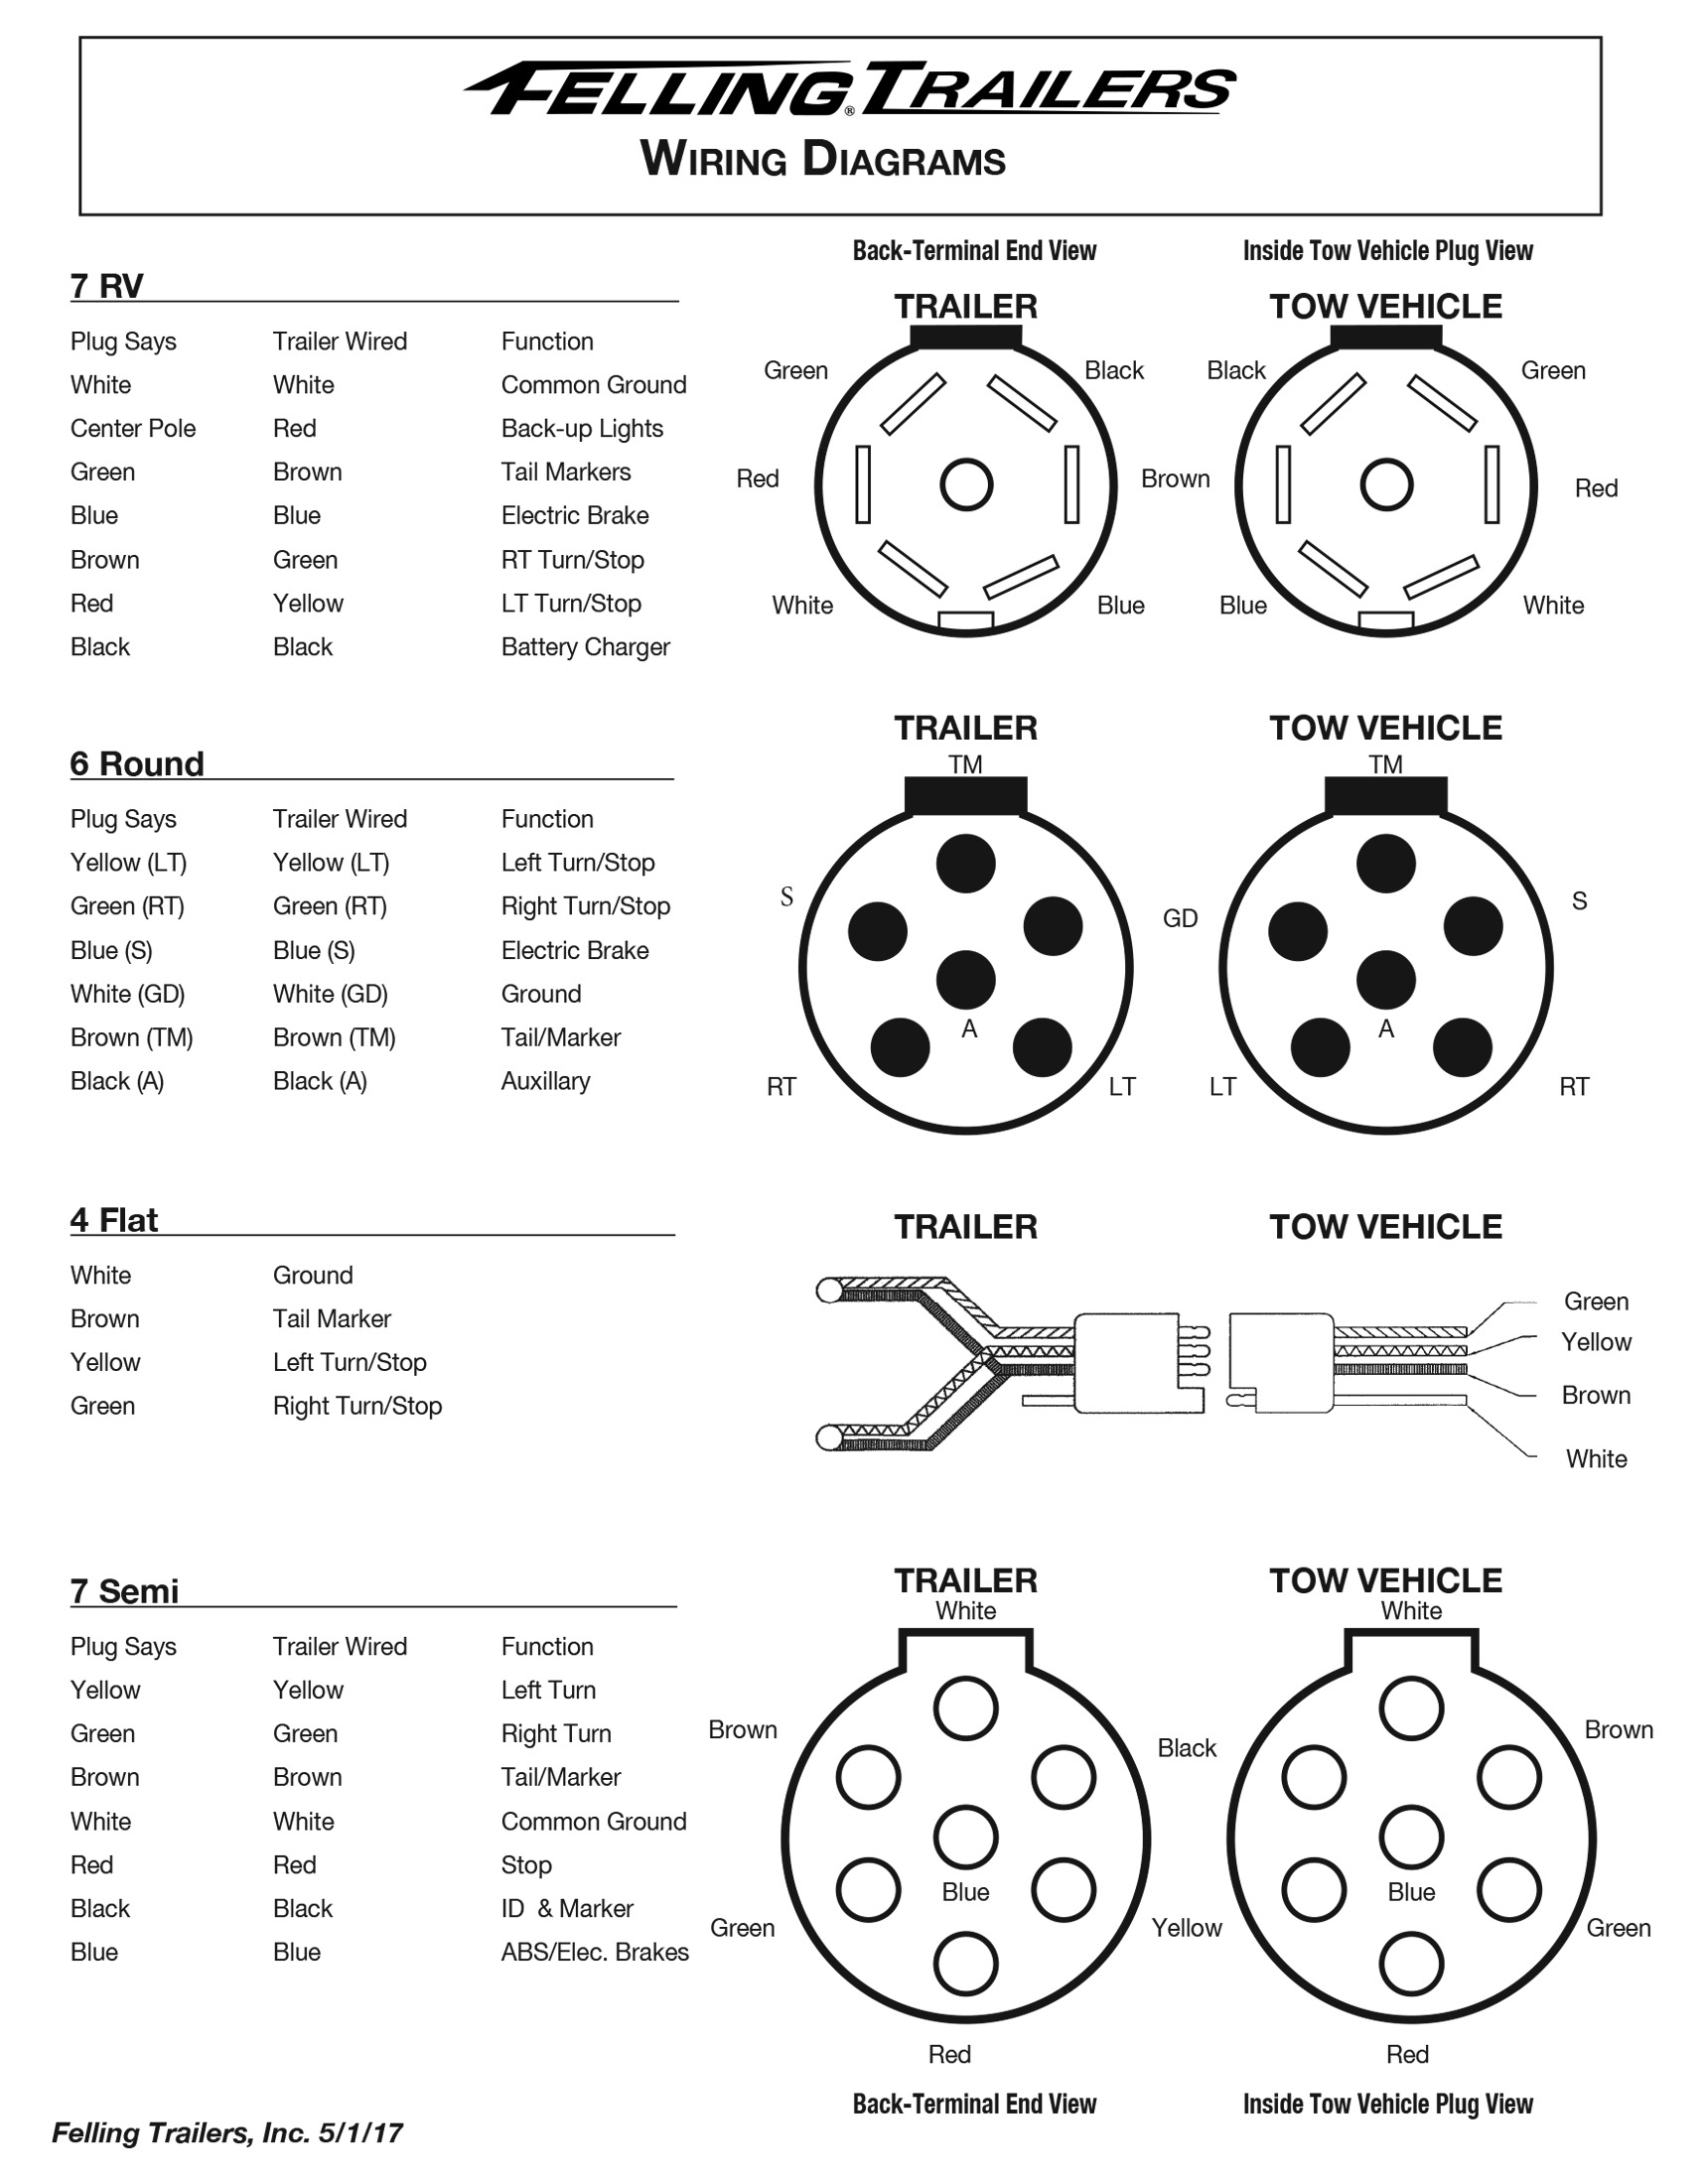 Service- Felling Trailers Wiring Diagrams, Wheel Toque - Seven Pin Trailer Wiring Diagram